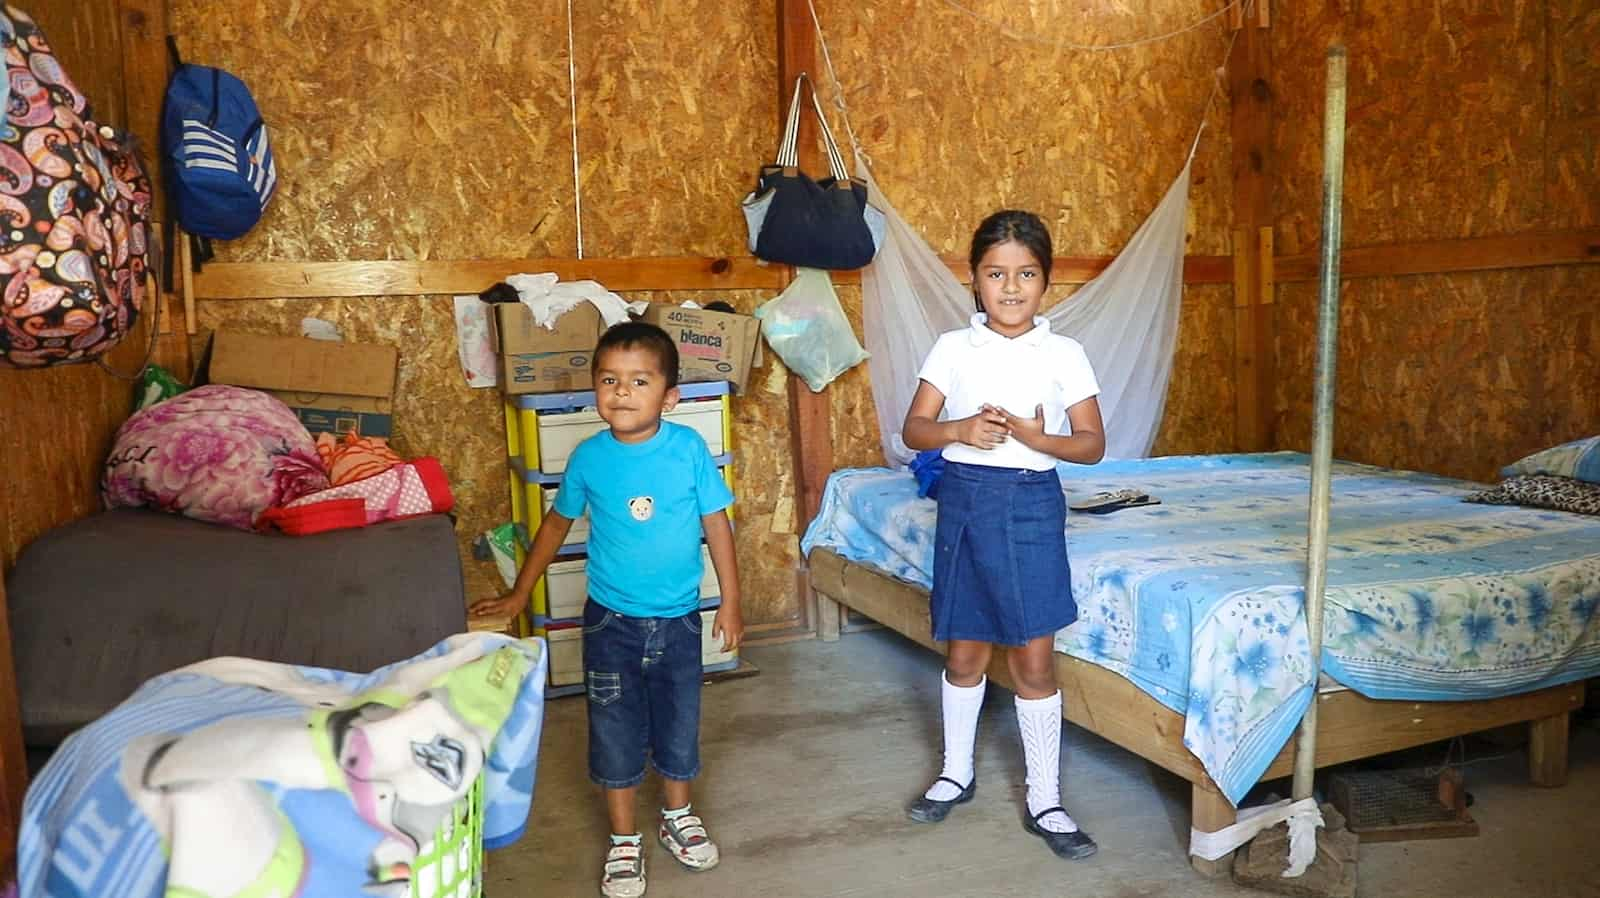 A boy and girl stand inside a home rebuilt after the Mexico earthquake next to their beds.